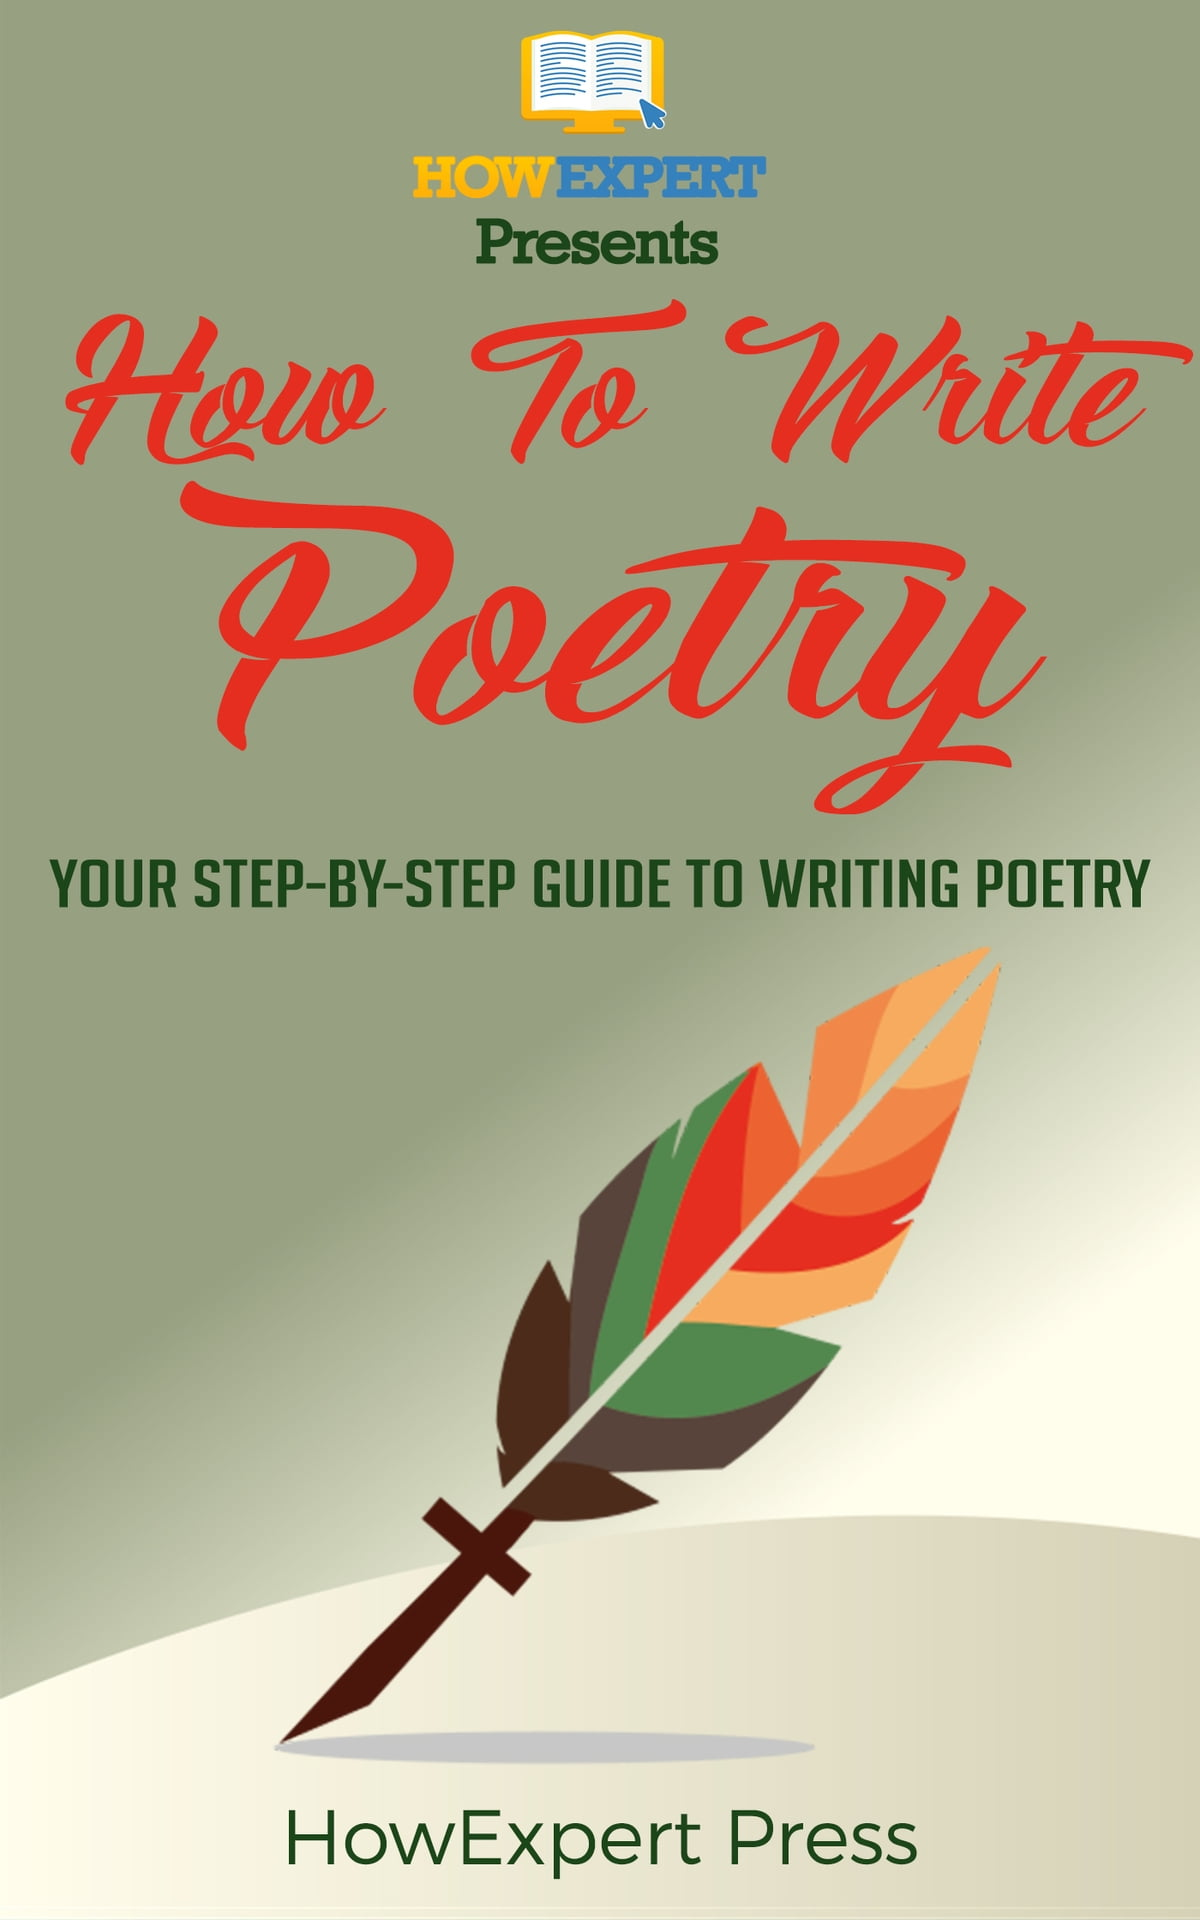 Funny Poetry : A Basic Guide To Writing Haiku Poems